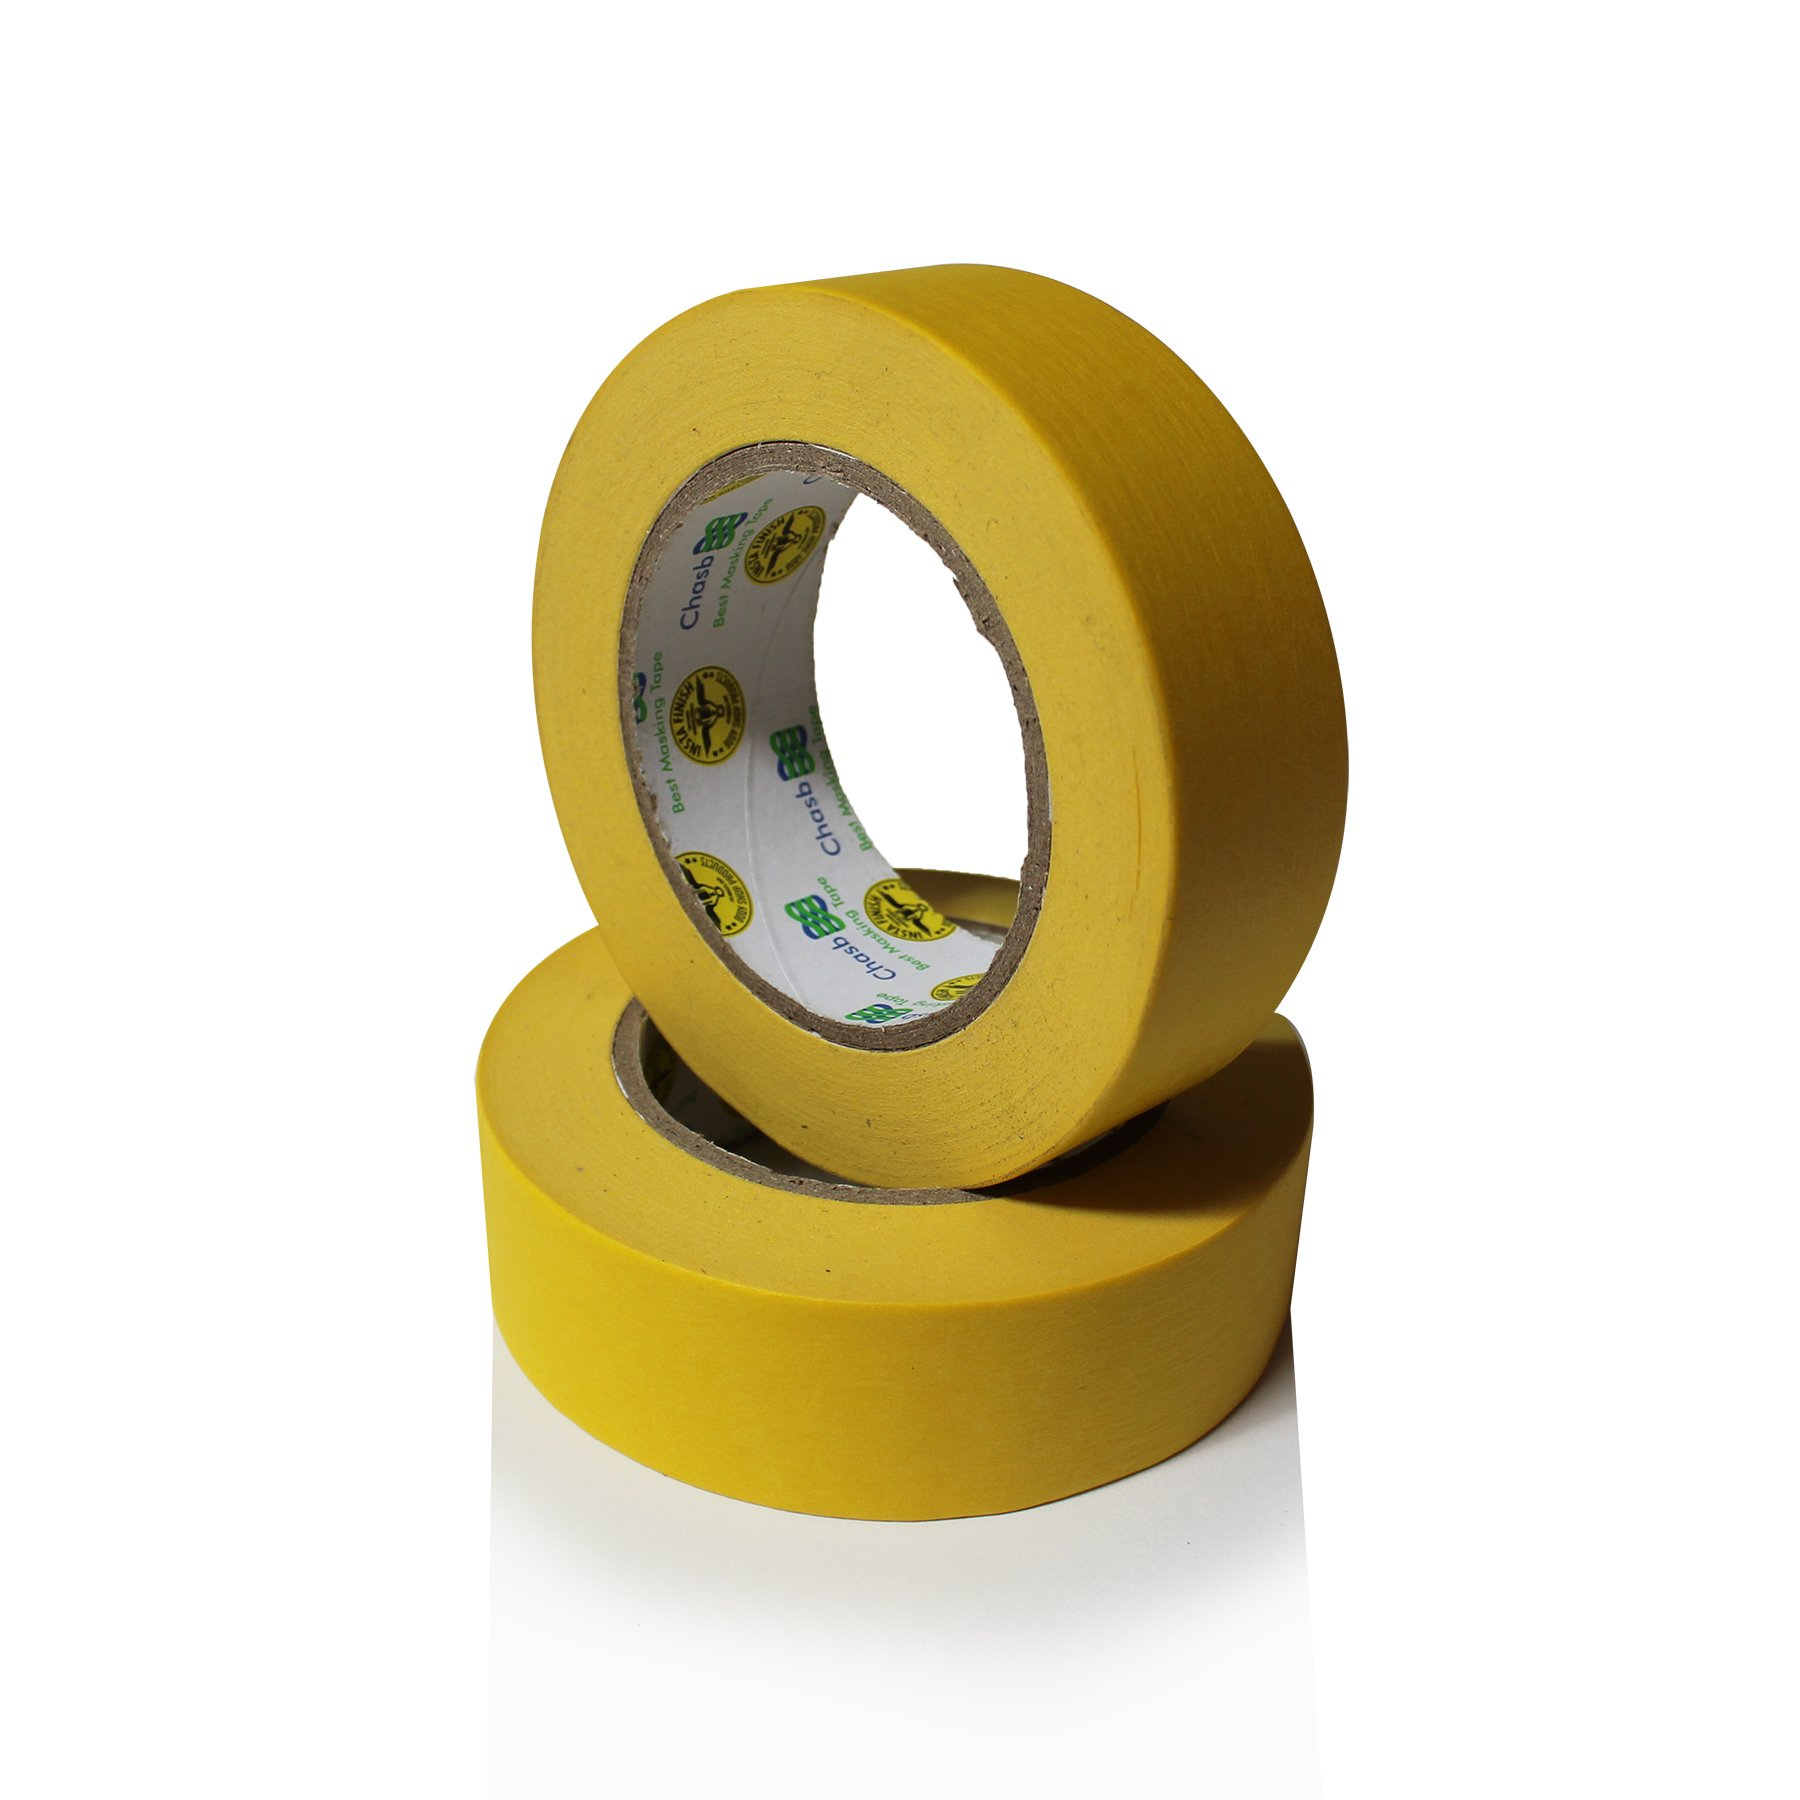 Insta Finish Performance Yellow Masking Tape (1.5 inch x 60 yards) 1 Case of 24 Rolls - Crepe Paper Industrial Grade - Easy Release Auto Body Tape 1.5''